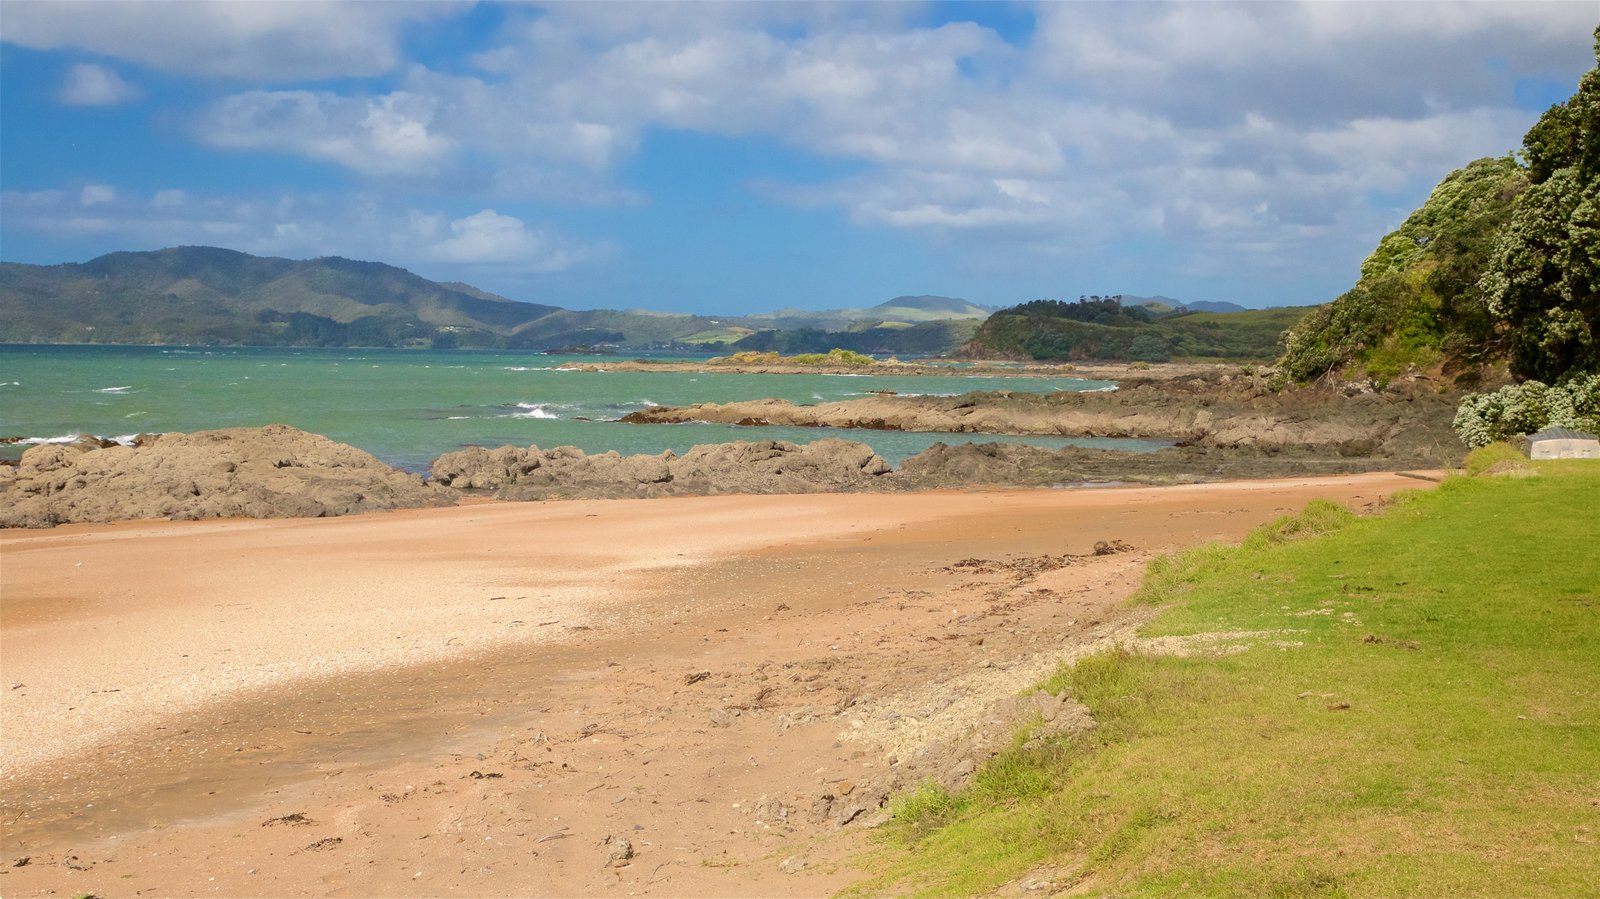 Cable Bay showing rugged coastline, general coastal views and a beach